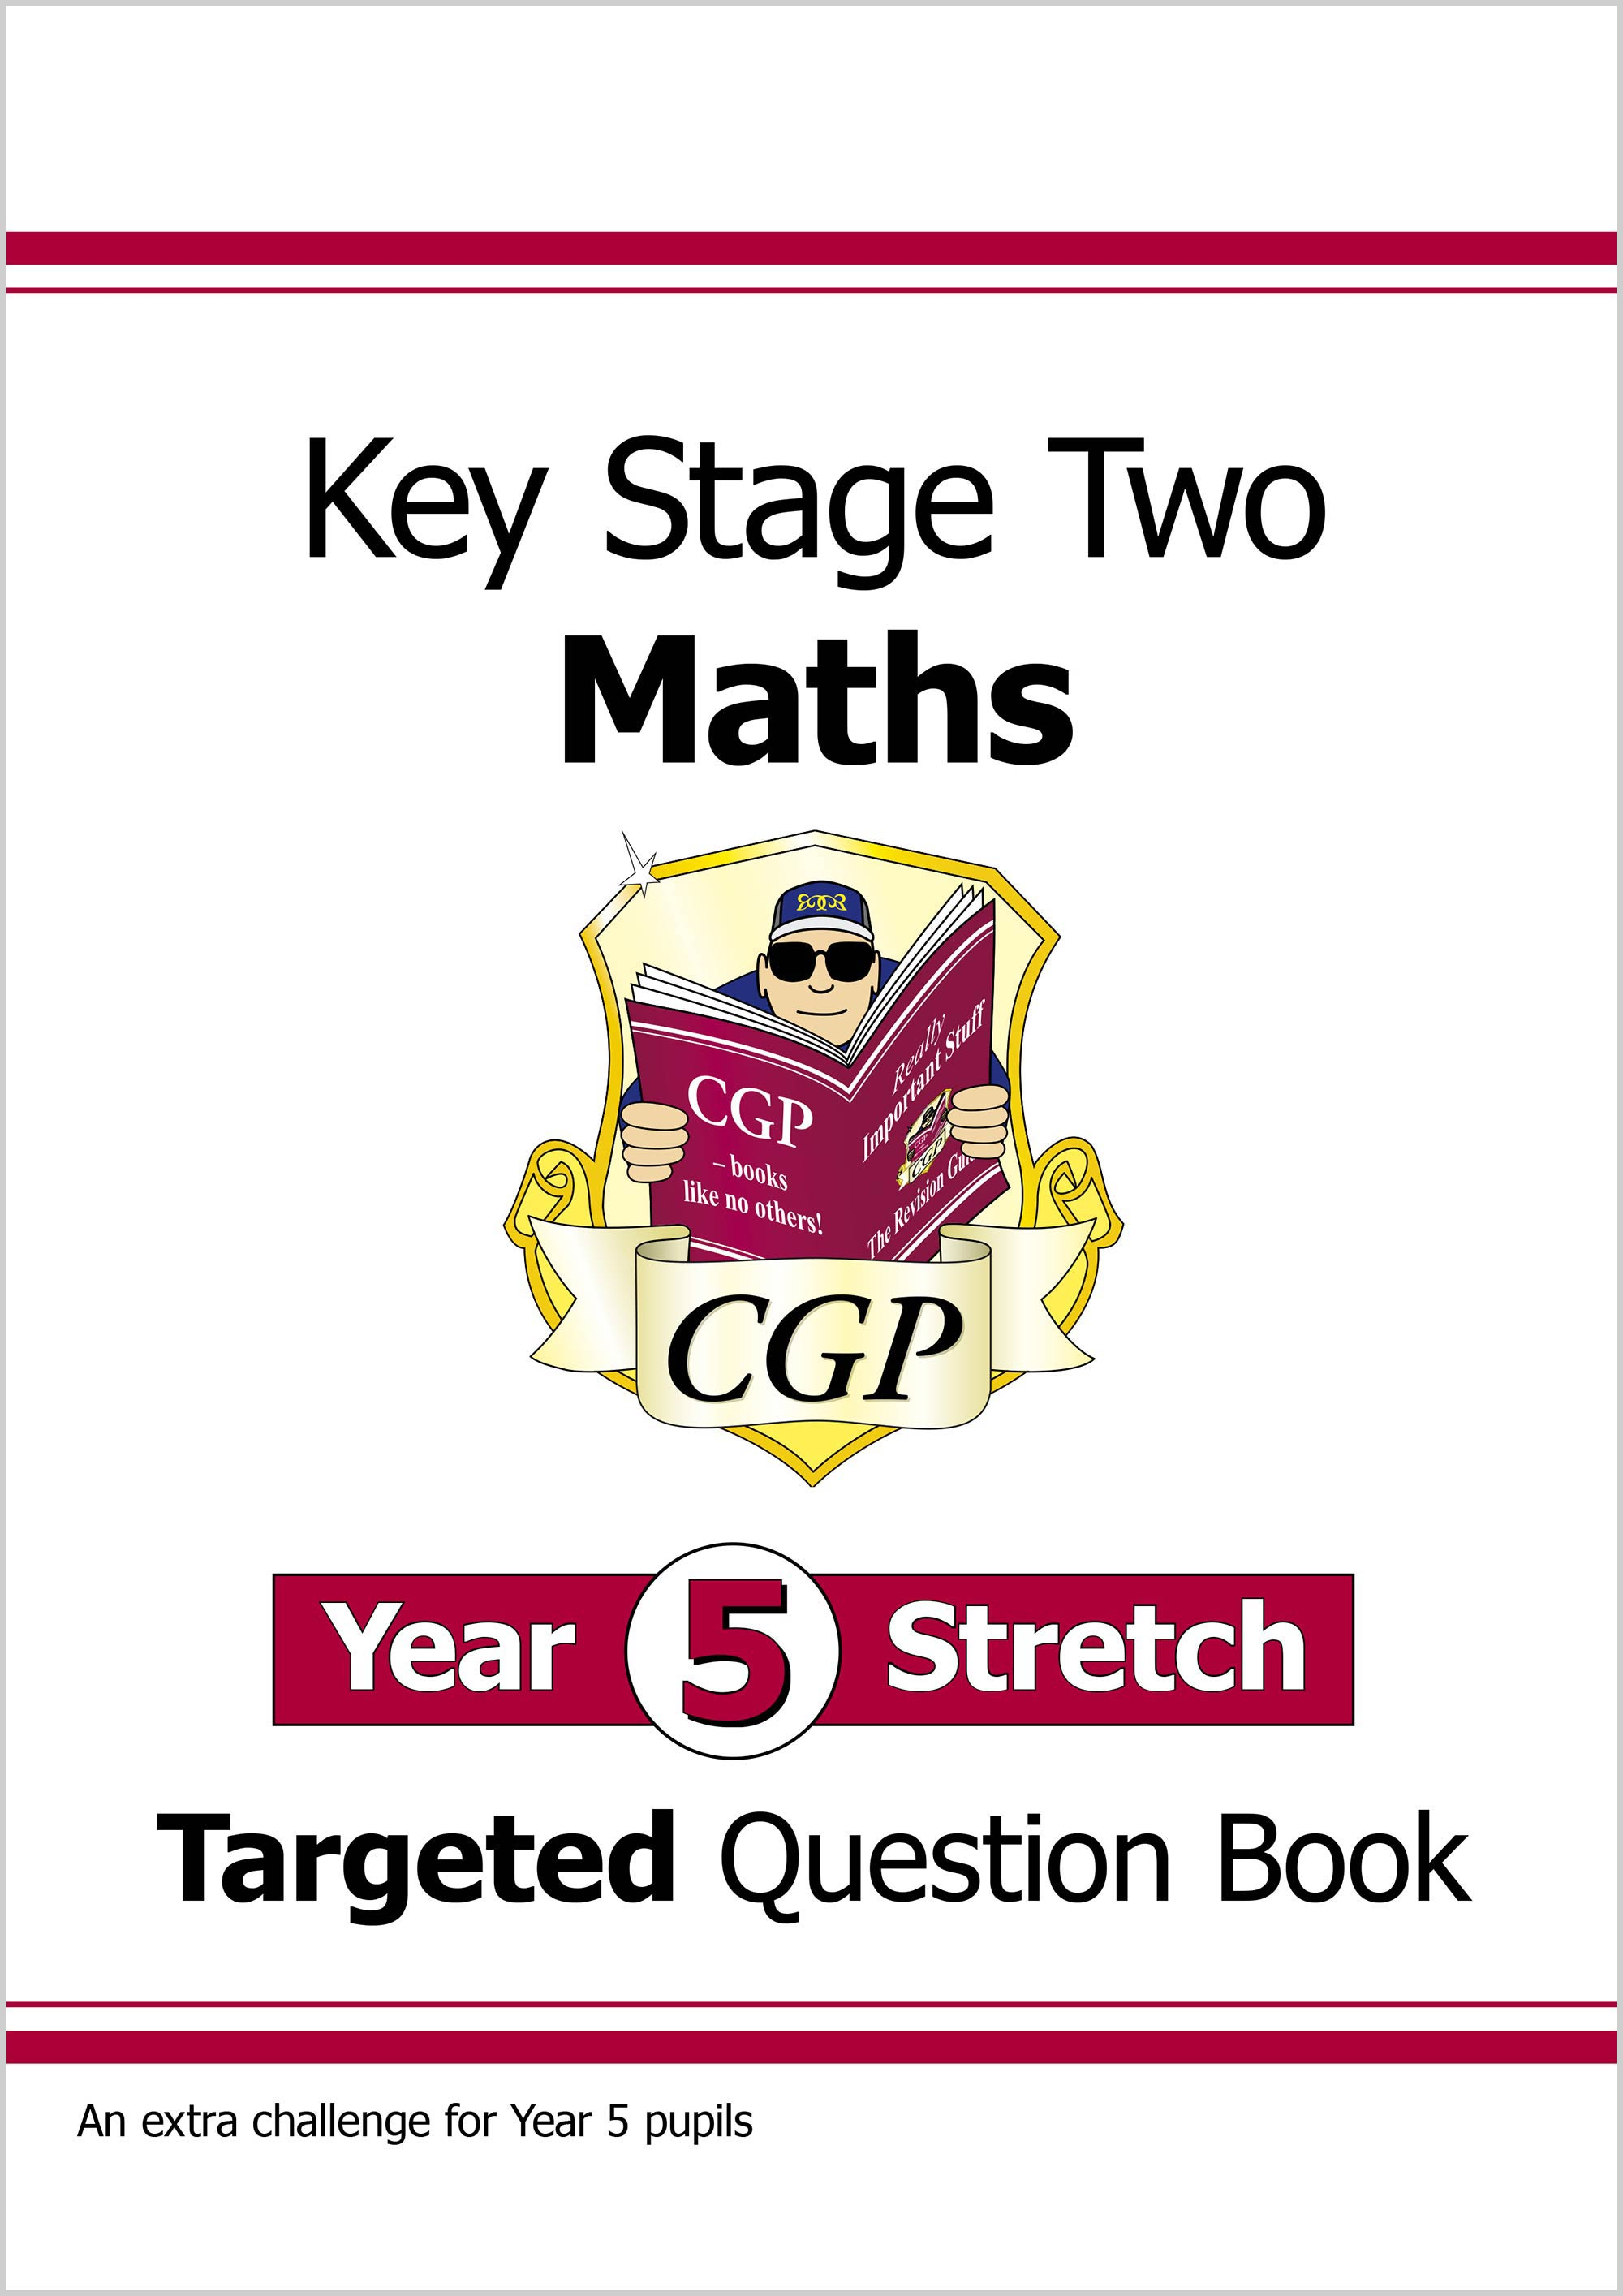 M5HQ21DK - KS2 Maths Targeted Question Book: Challenging Maths - Year 5 Stretch